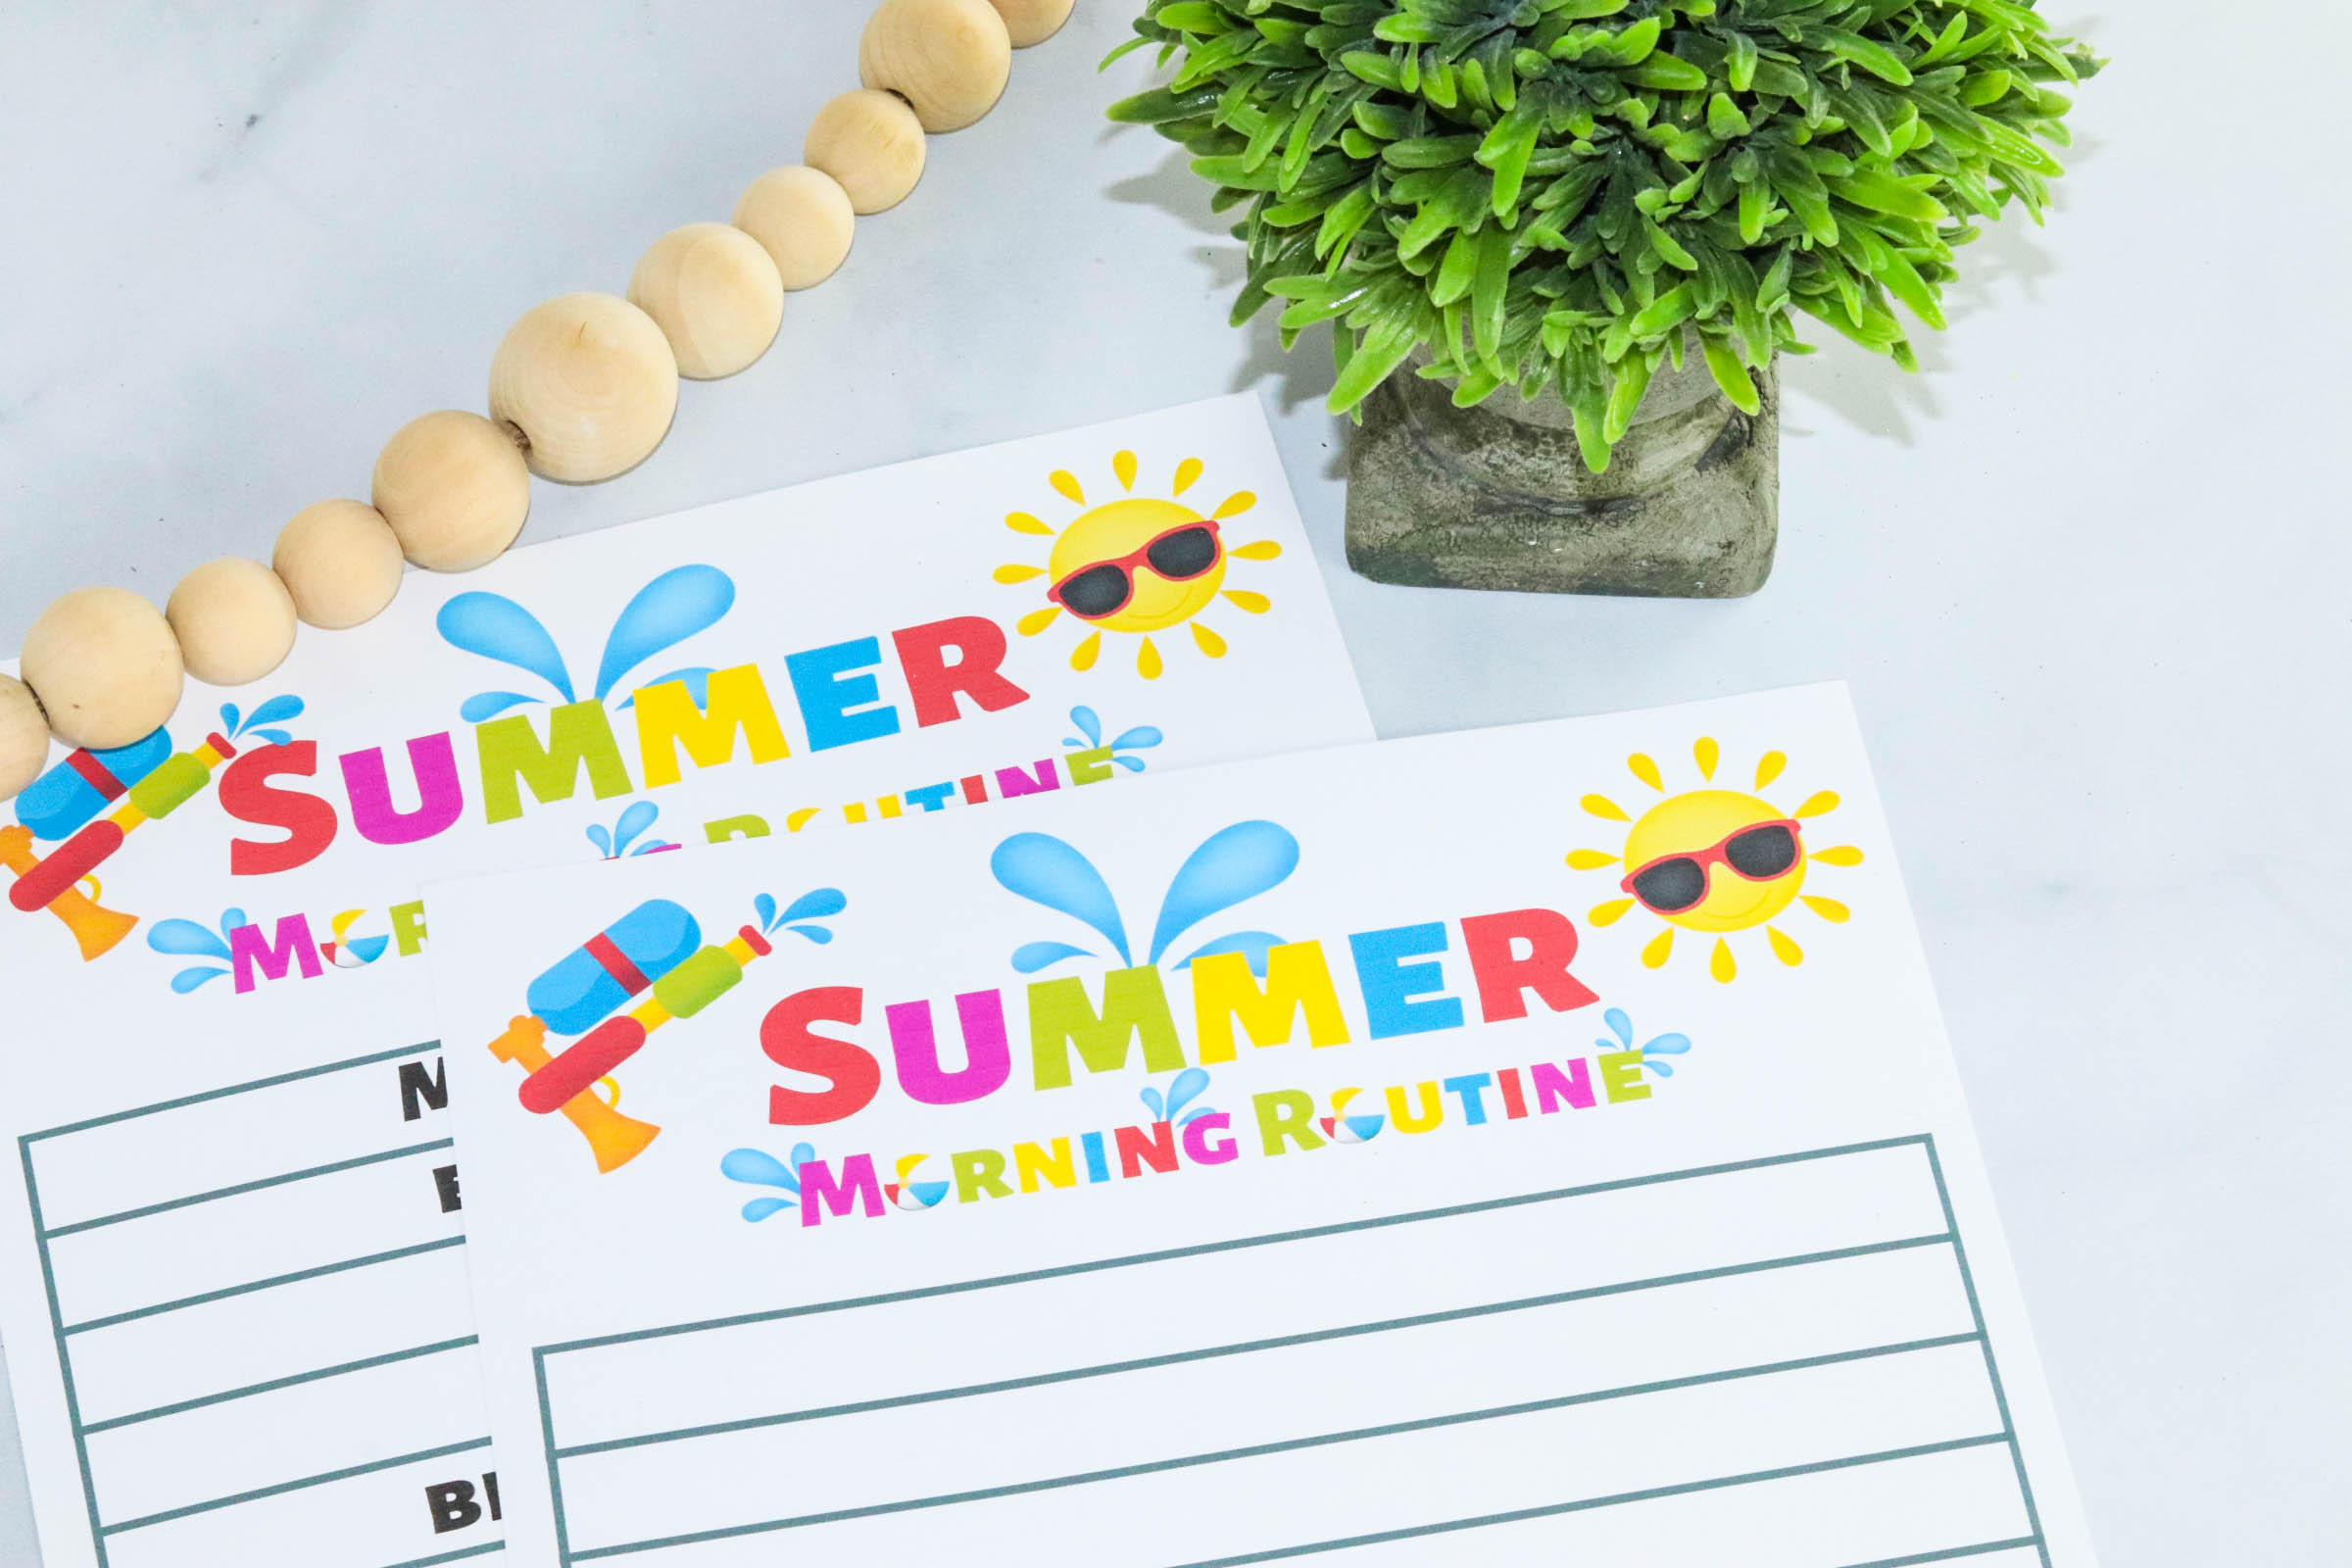 Nervous about transitioning to summertime and losing your structure? This simple summer morning routine for kids helps keep kids and moms organized all summer long.